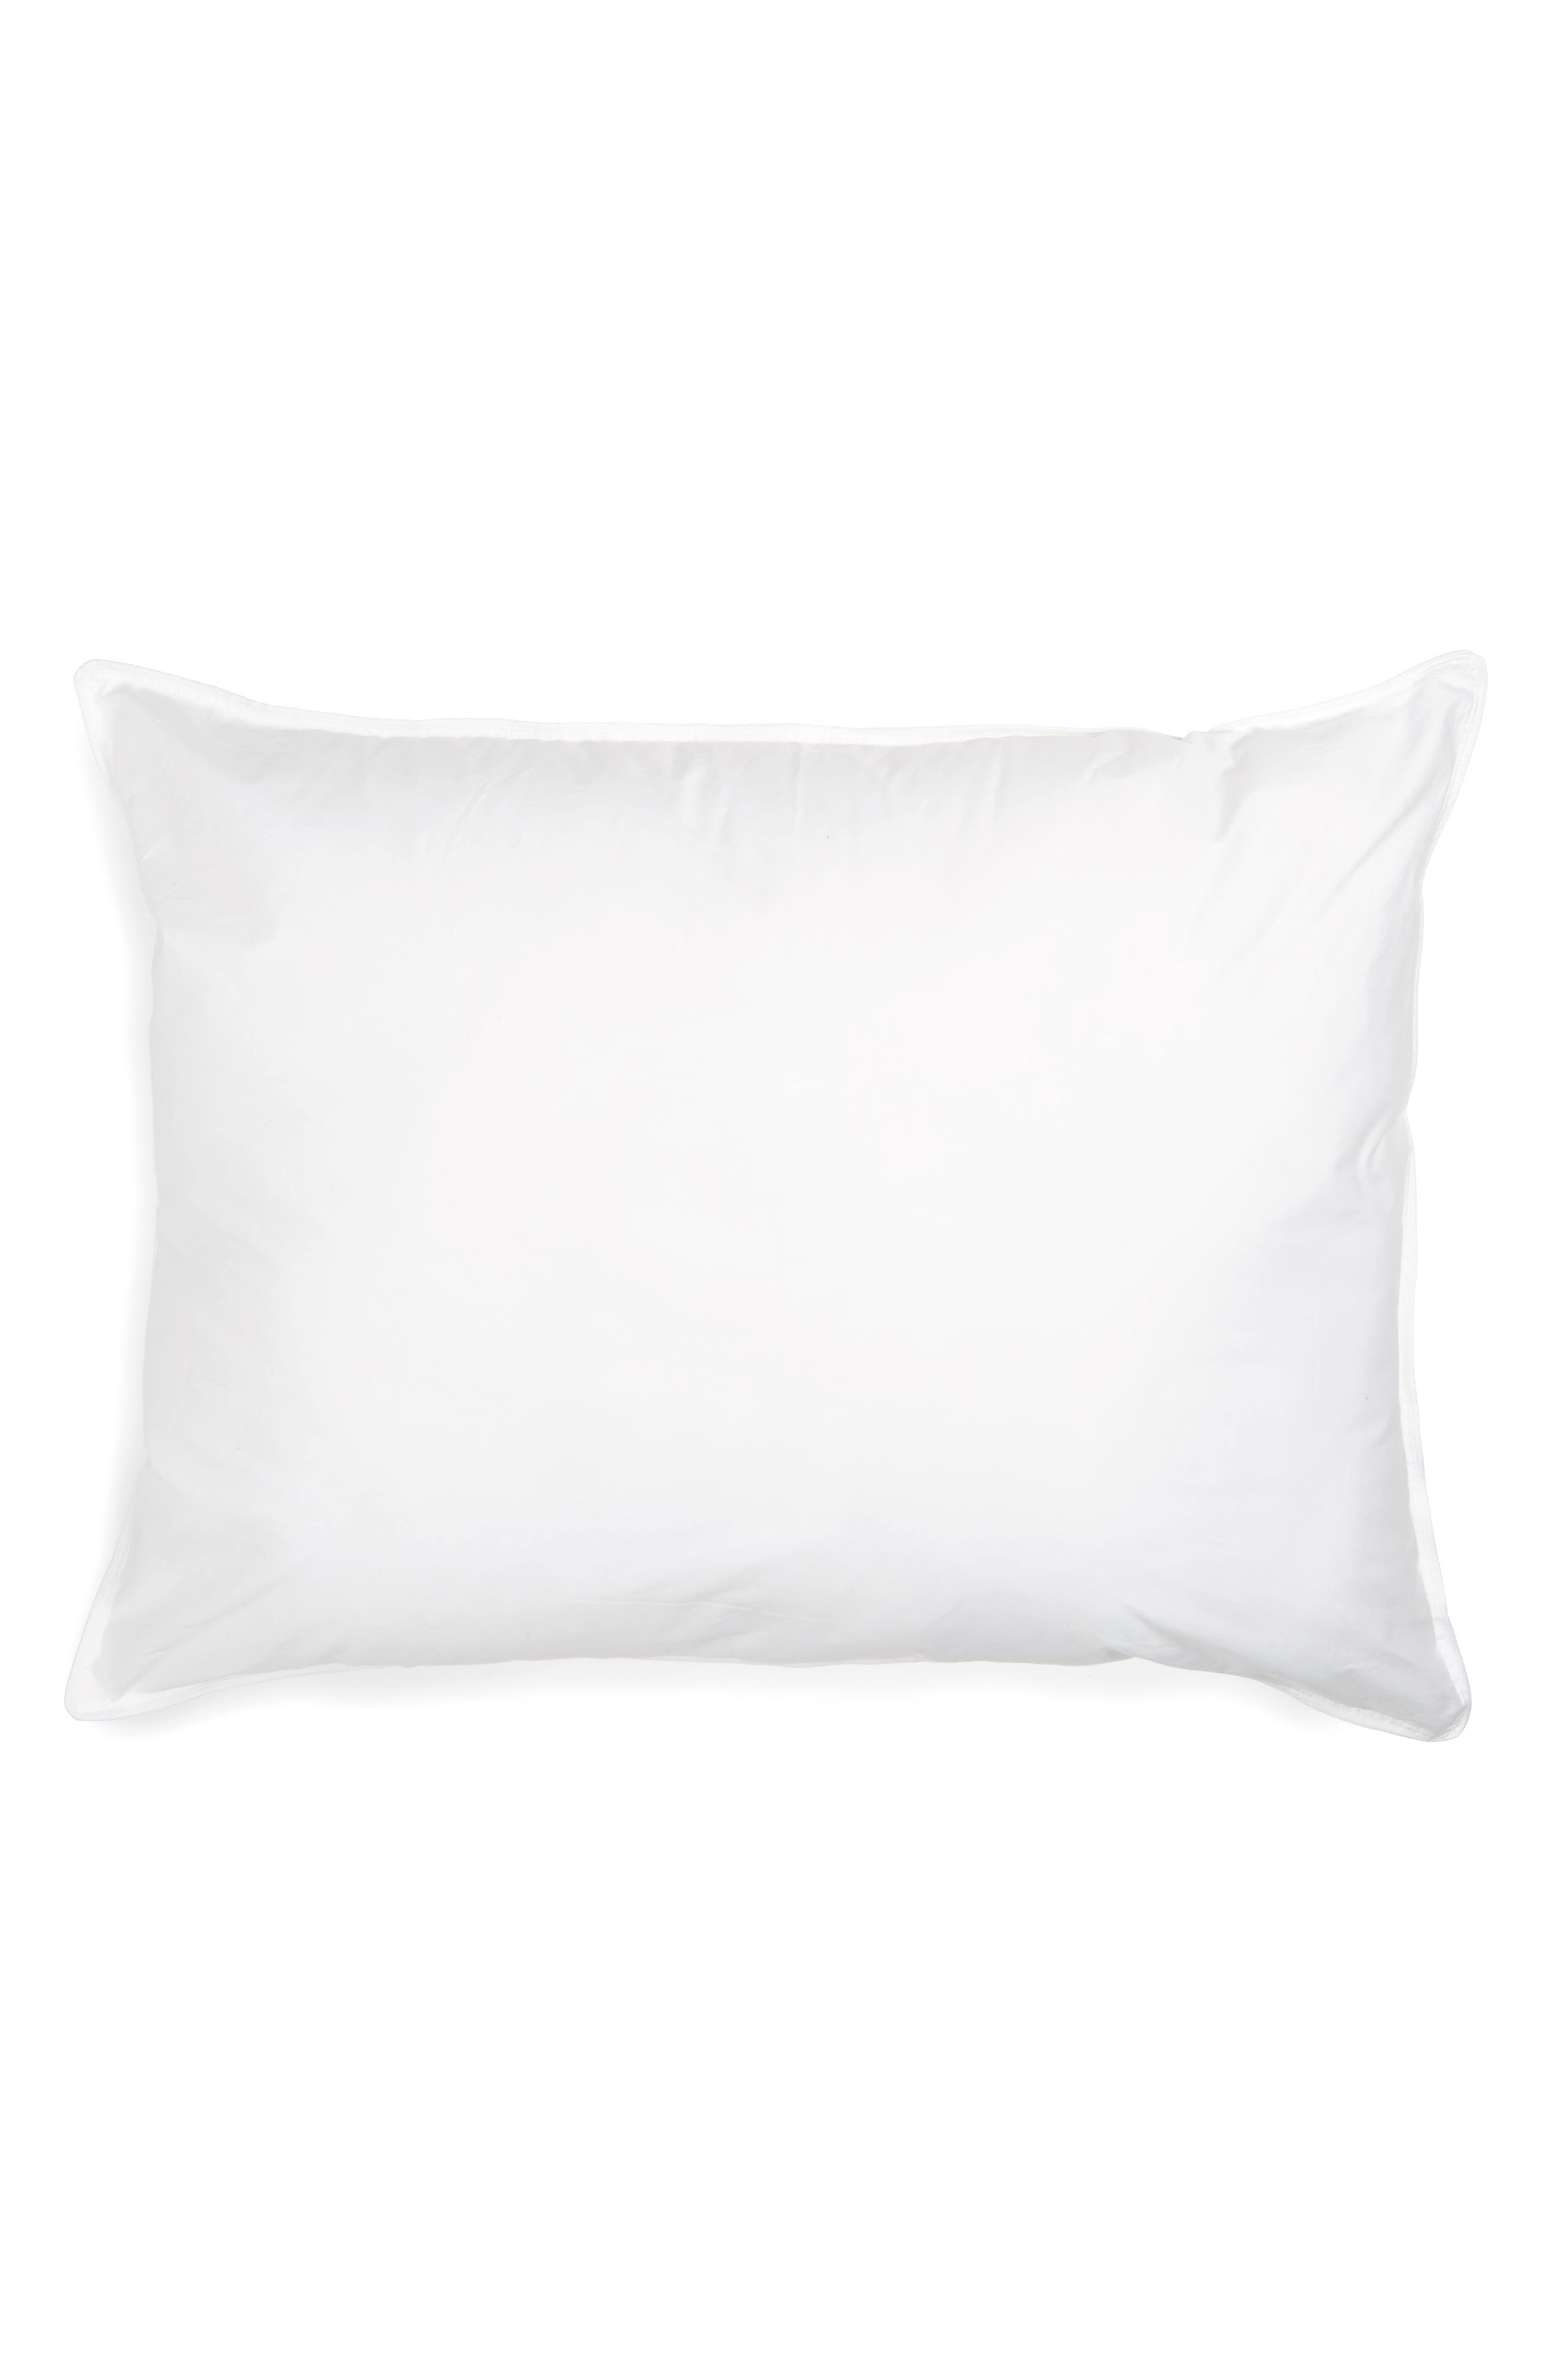 'Home Collection' Hypoallergenic Pillow,                             Main thumbnail 1, color,                             WHI